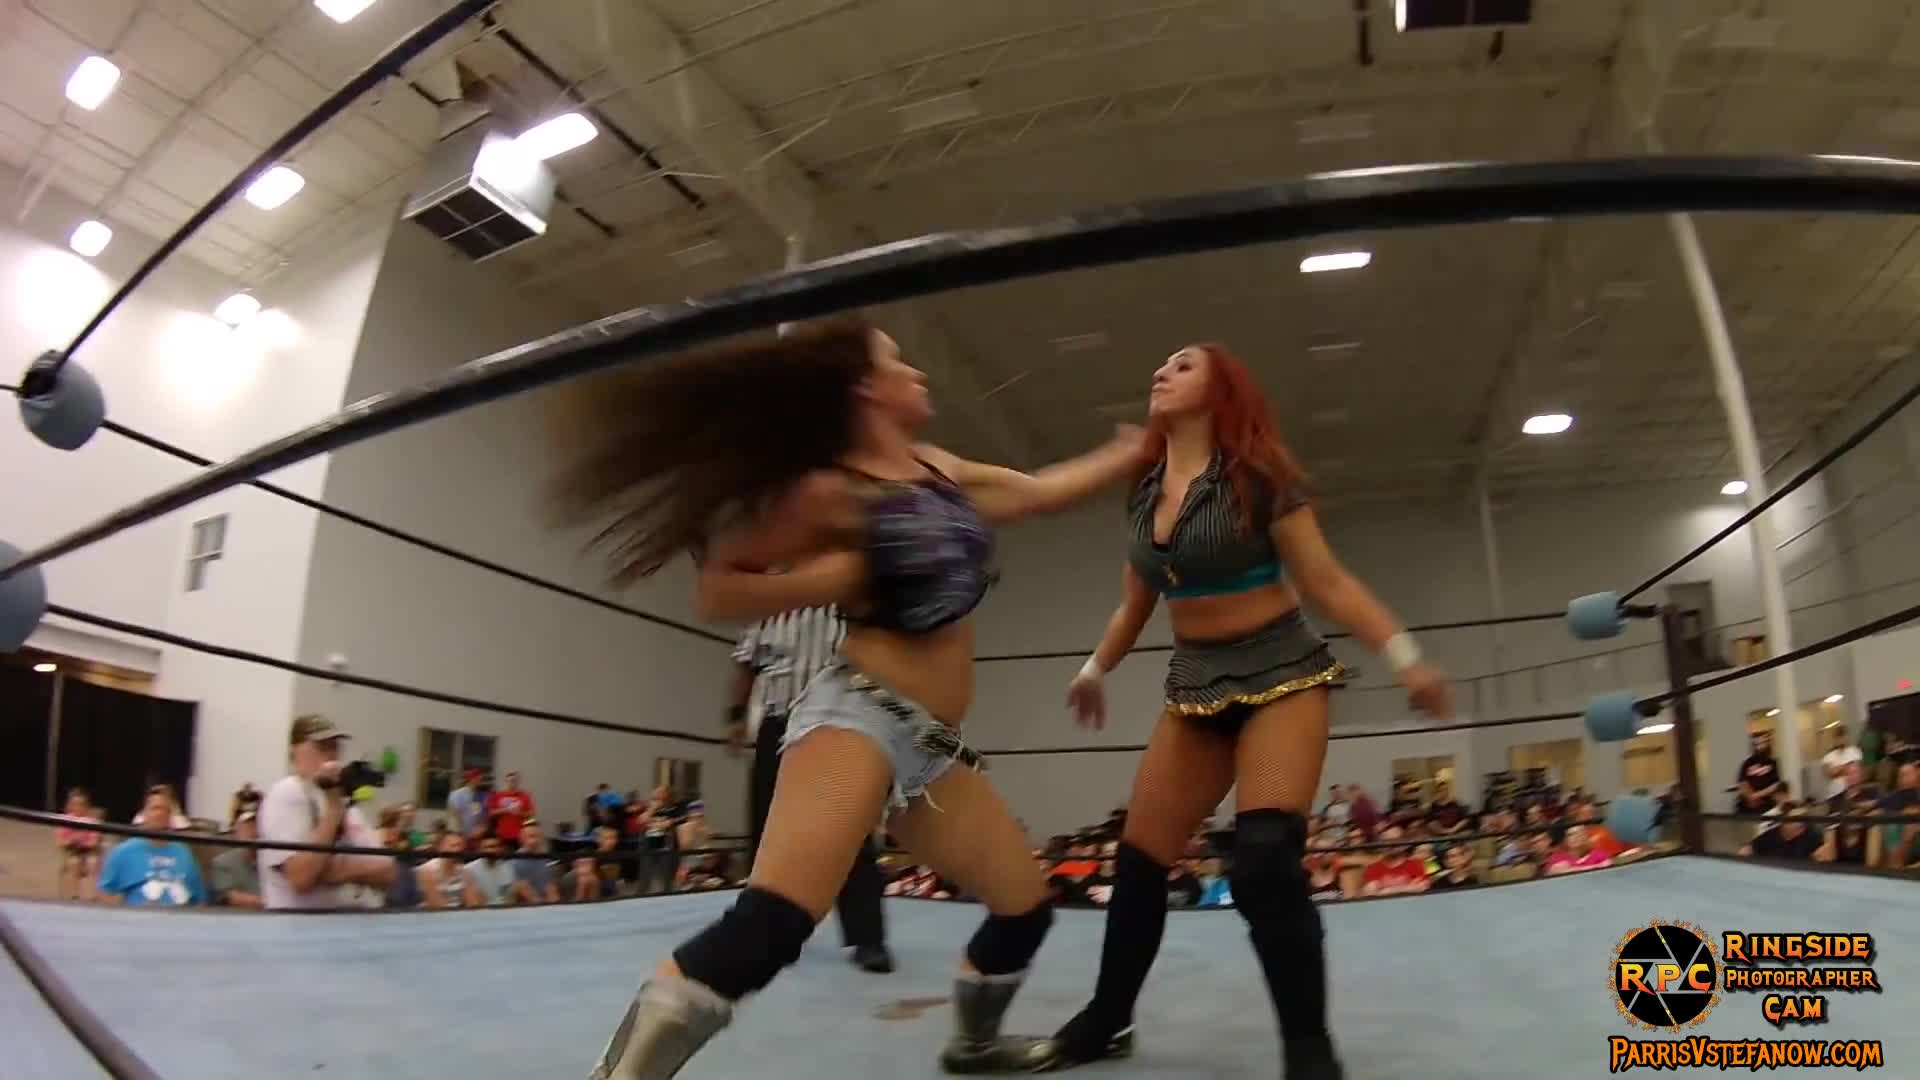 mickie james, parris v stefanow, ringside photographer cam, mickie GIFs